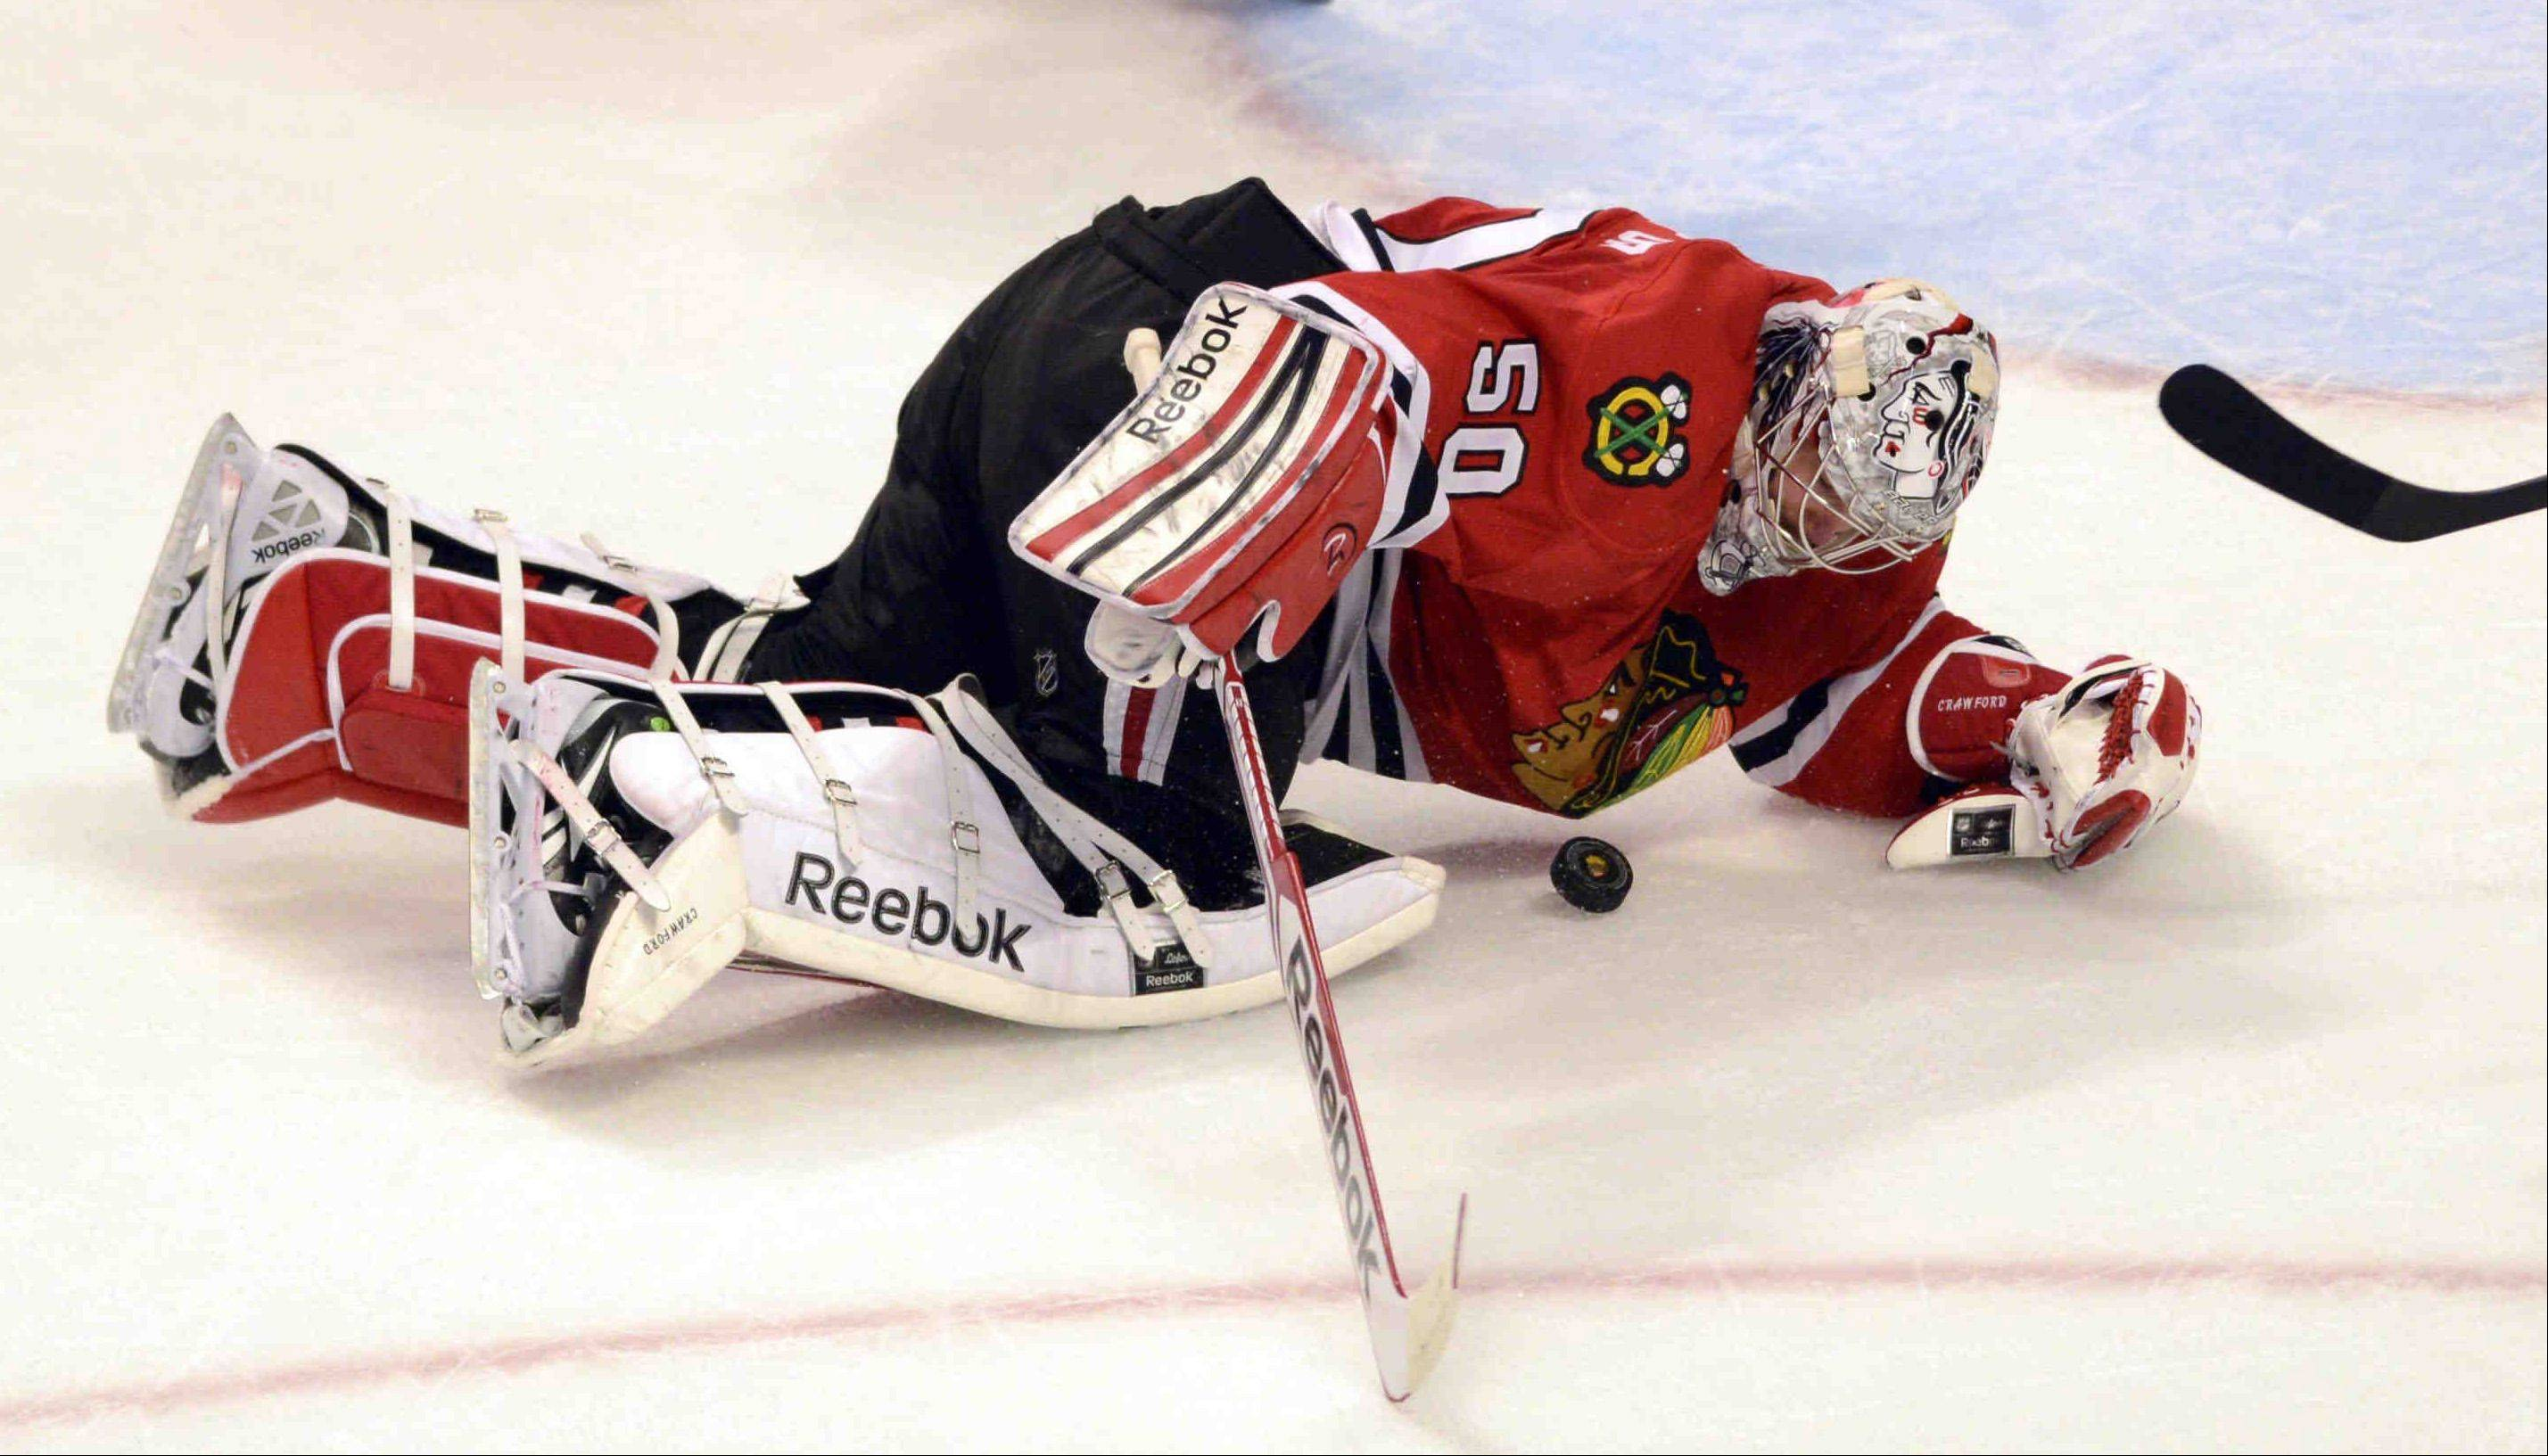 Blackhawks goalie Corey Crawford has won 12 playoff games after going 19-5-5 with a 1.94 goals-against average during the regular season. He has outplayed the Wings' Jimmy Howard and the Kings' Jonathan Quick. Tuukka Rask of the Bruins is next.